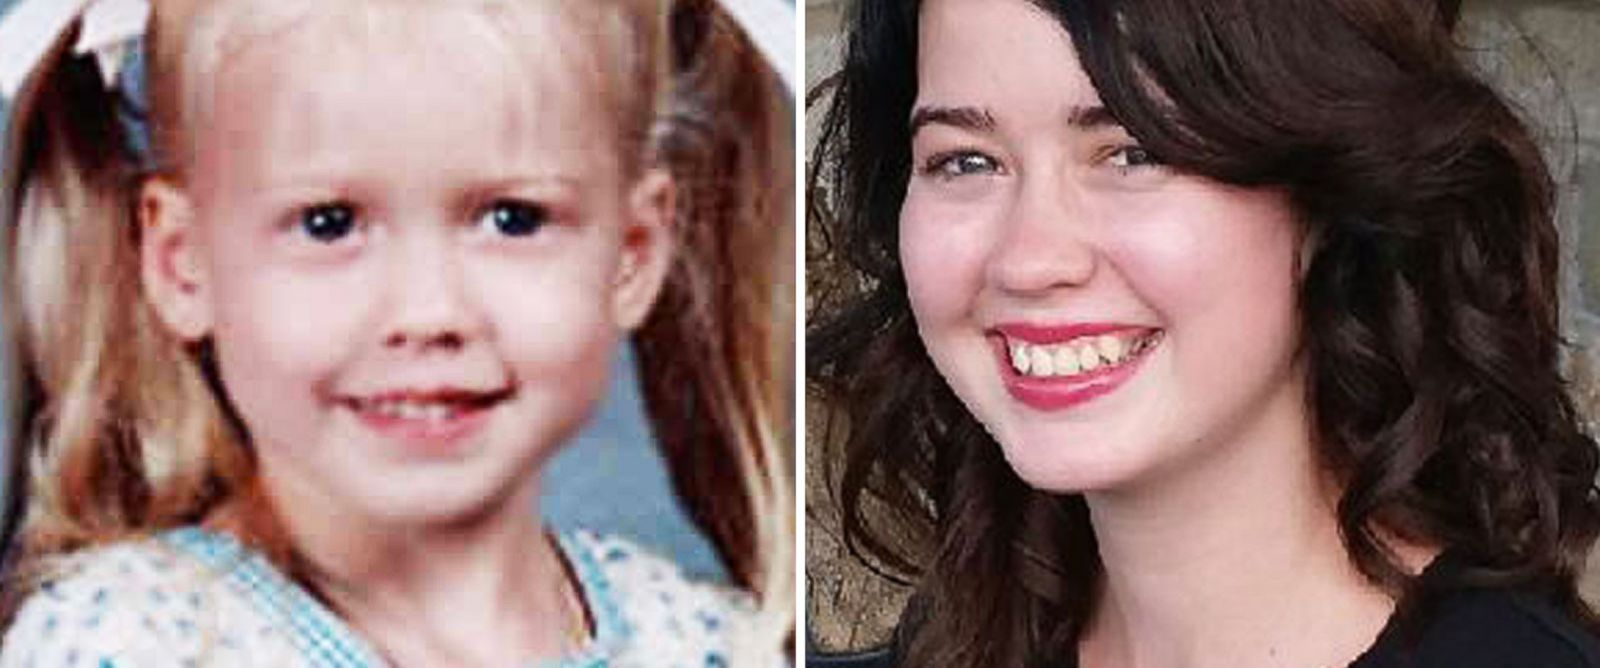 PHOTO: Left, Sabrina Allen, 4, is shown in this photo provided by the National Center for Missing and Exploited Children; right, Sabrina Allen, 17, is seen in this undated handout photo.